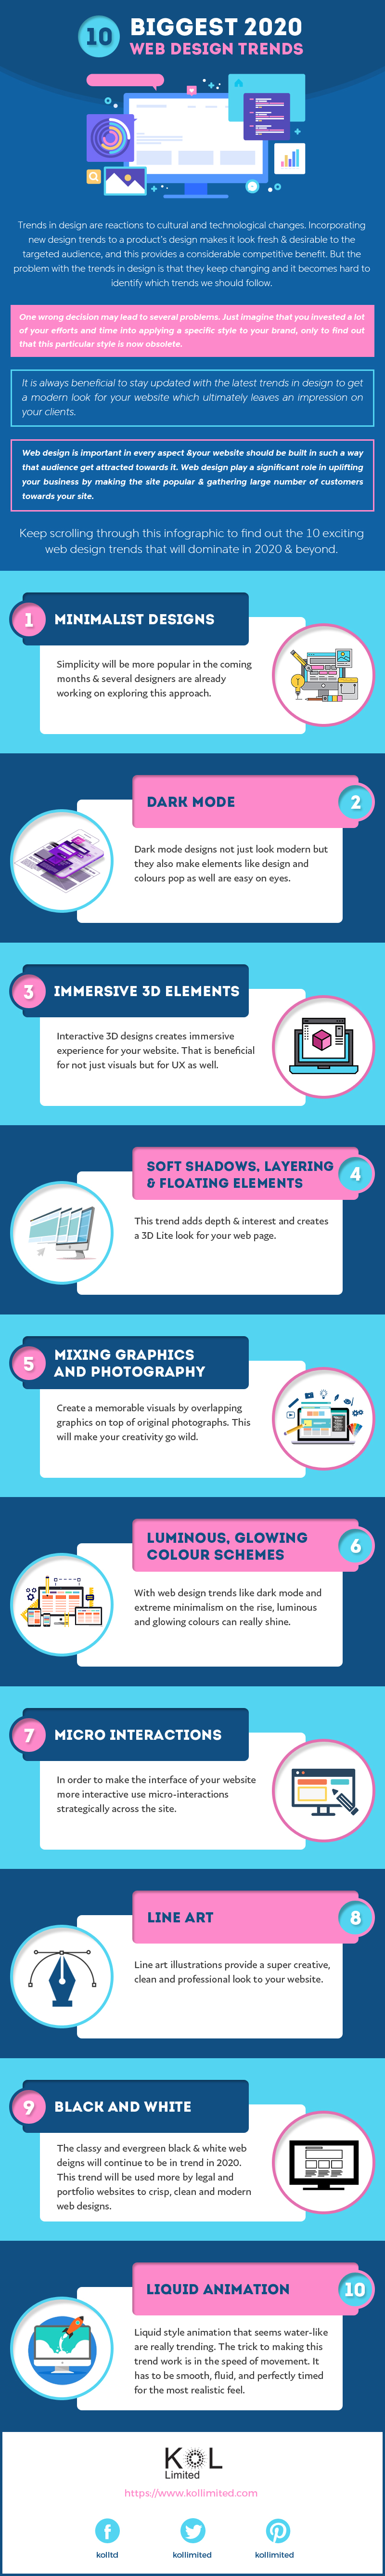 10 Biggest 2020 Web Design Trends